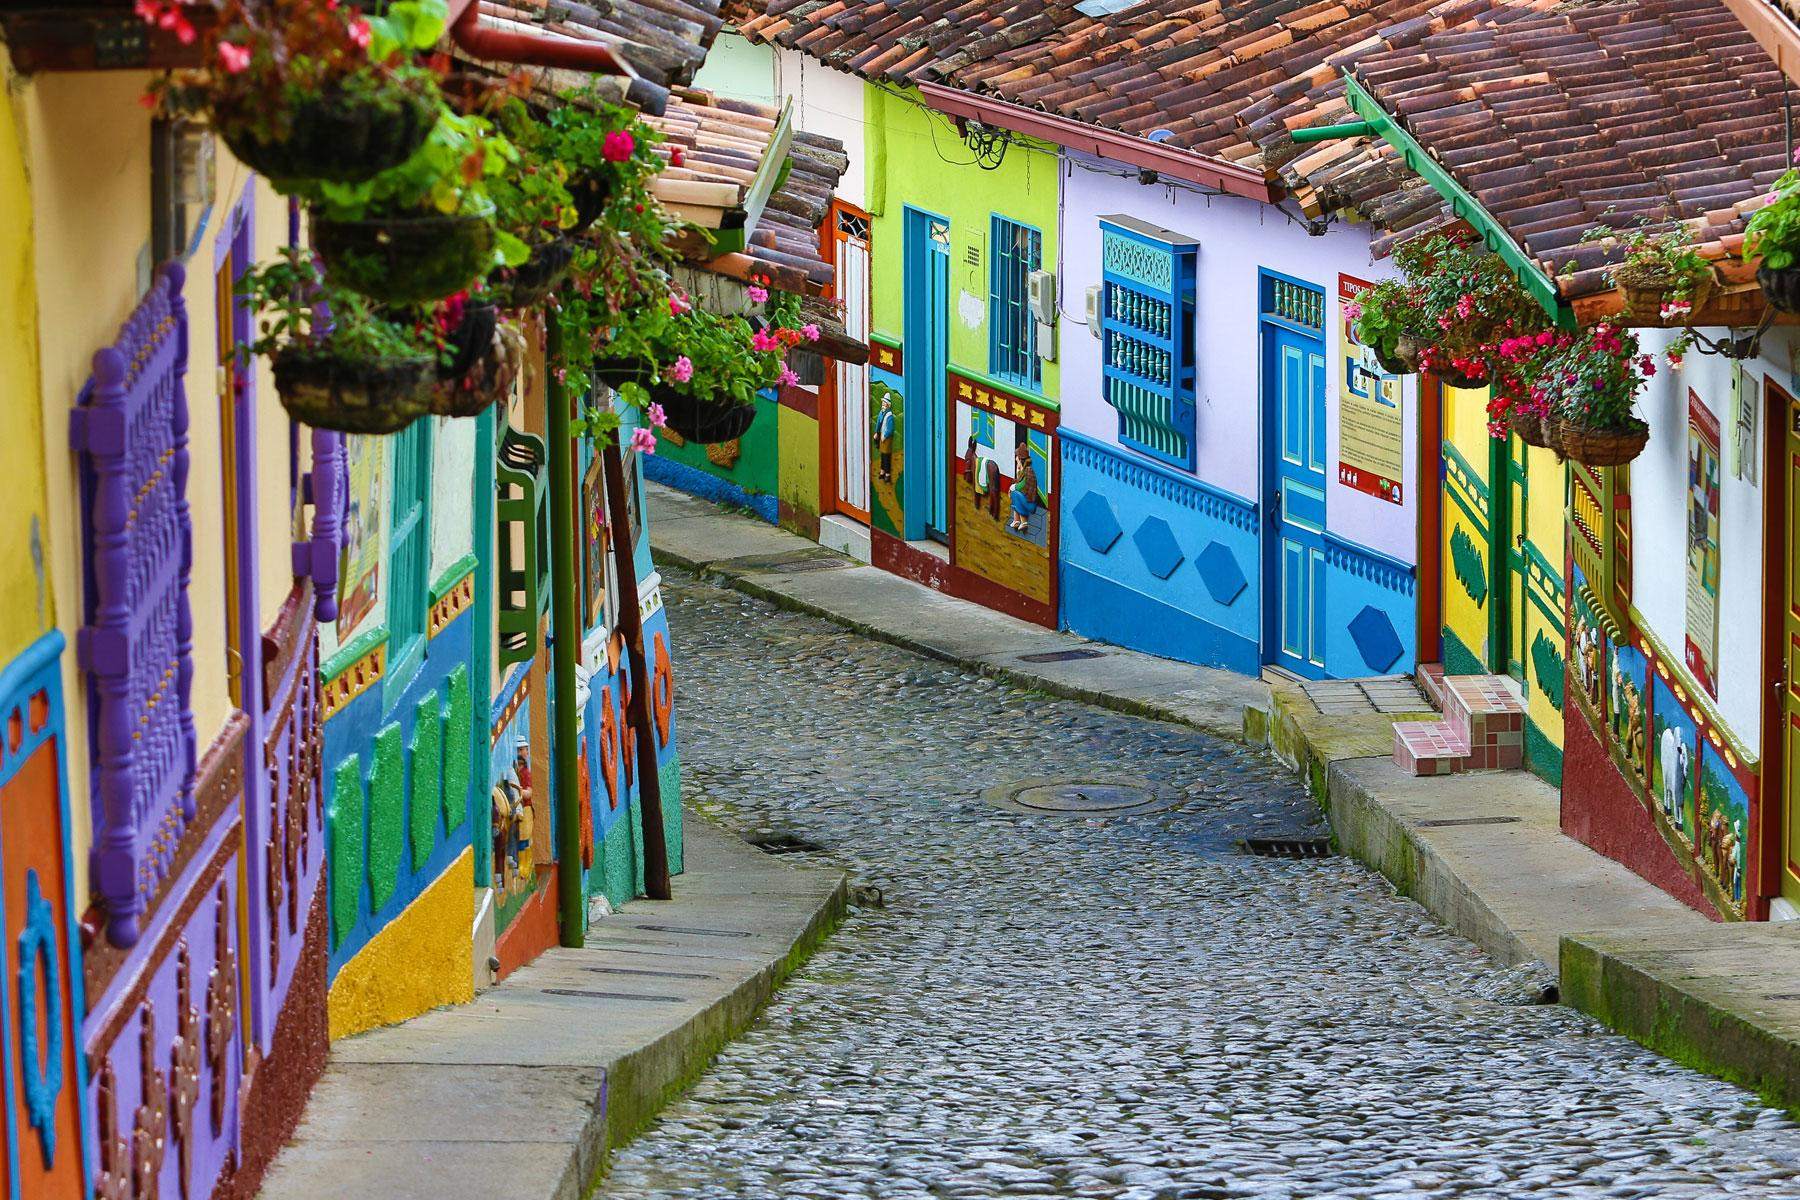 The 25 Most Colorful Towns In The World Fodors Travel Guide